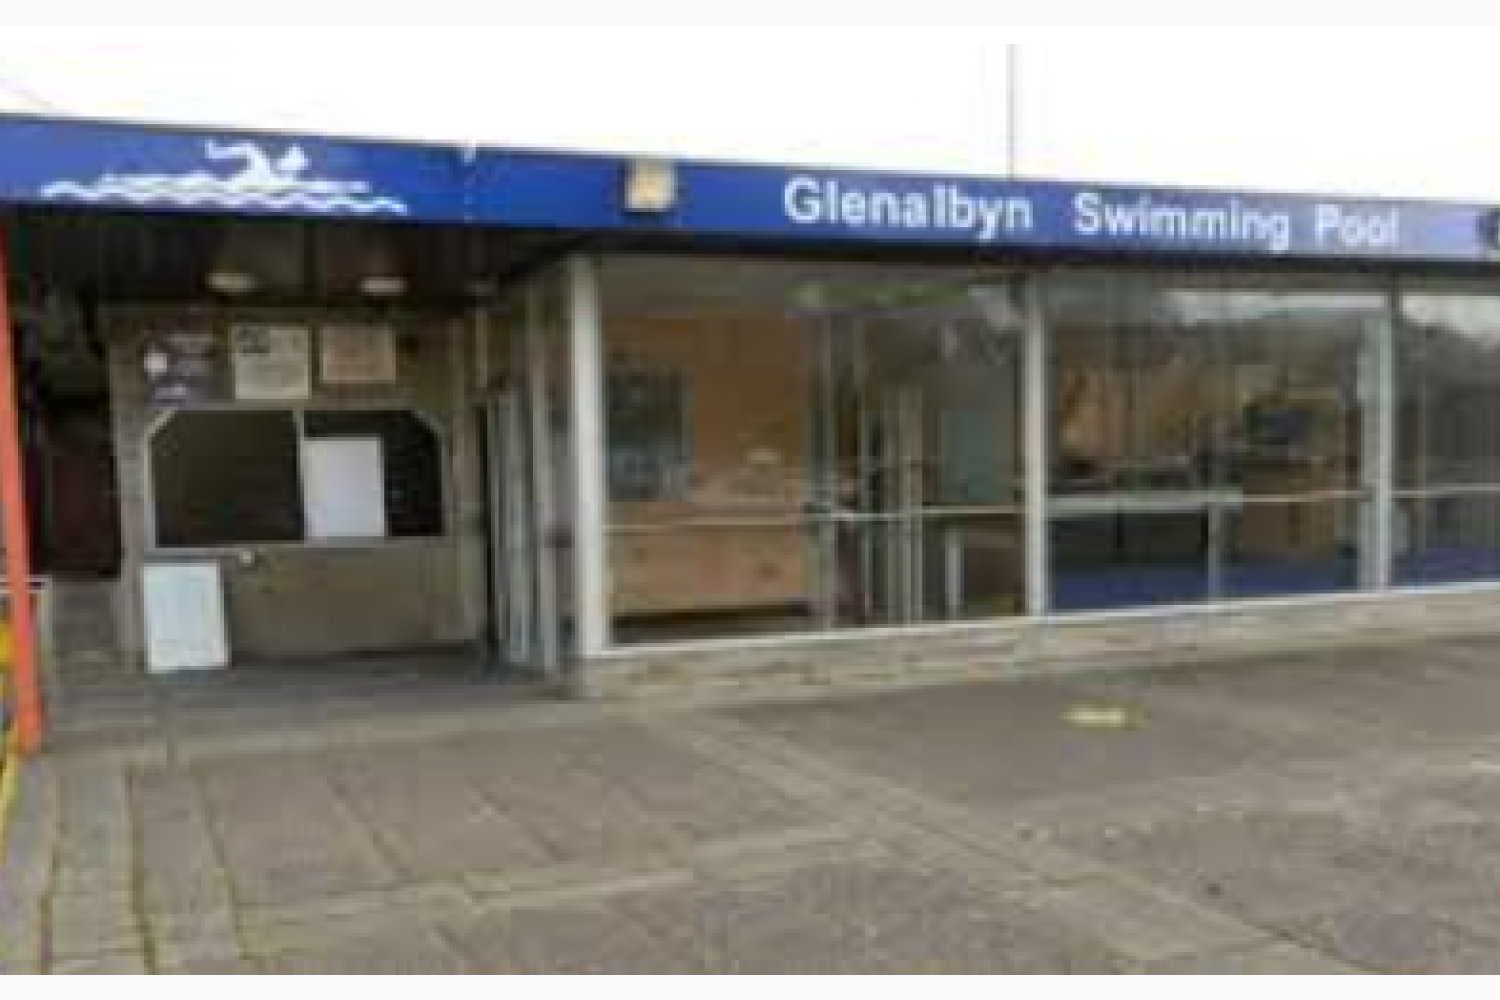 Membership advisory update as regards the Glenalbyn Pool